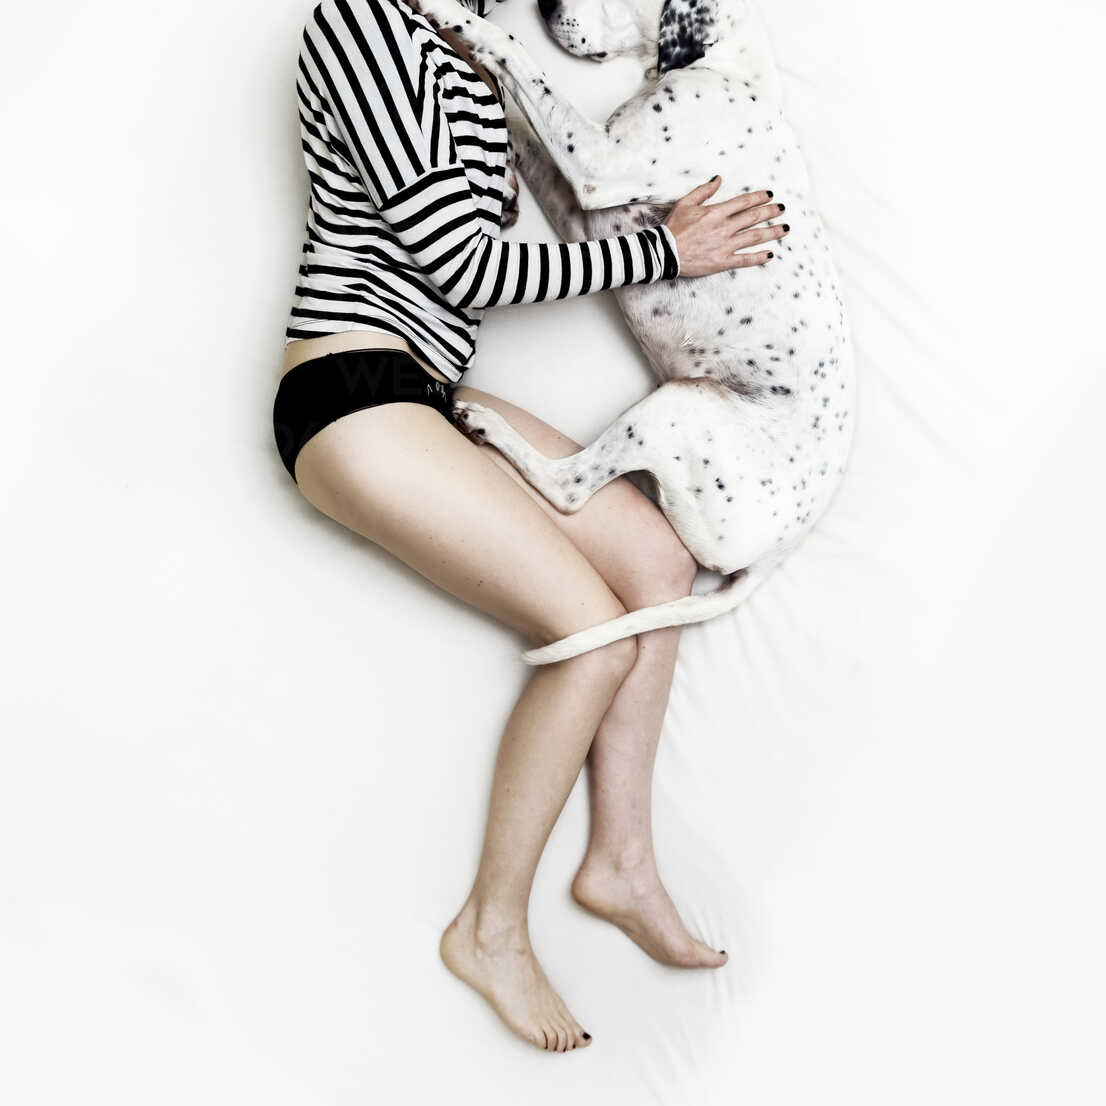 Woman and Dalmatian mongrel lying on white bed sheet - ONF000631 - noonland/Westend61